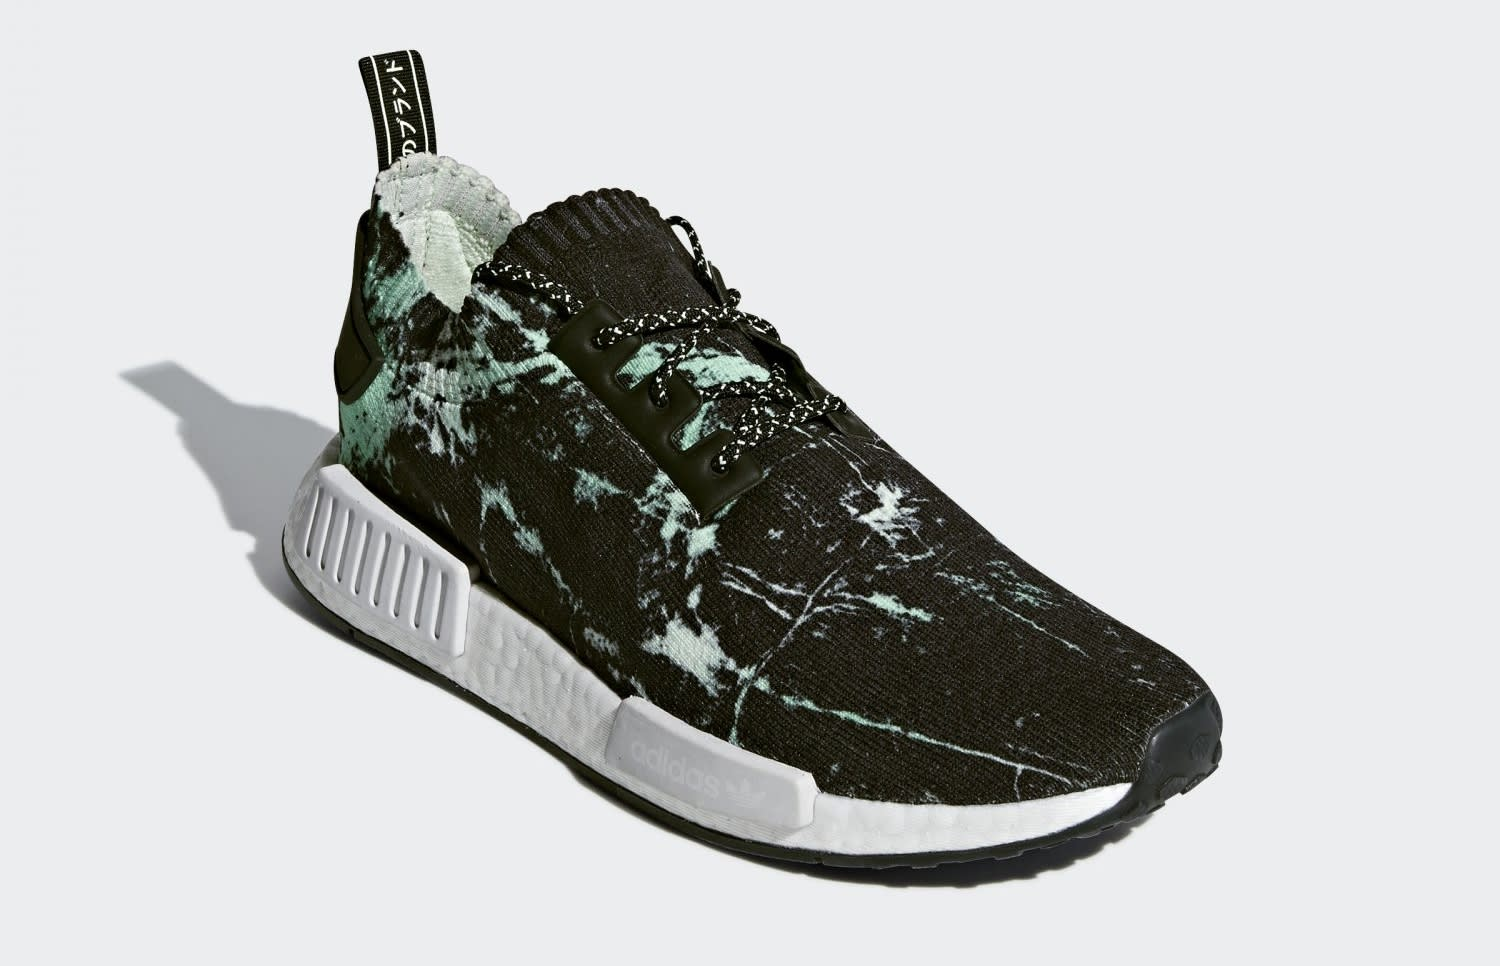 0d6a81490 ... good image via adidas adidas nmd r1 green marble release date bb7996  1547d 11252